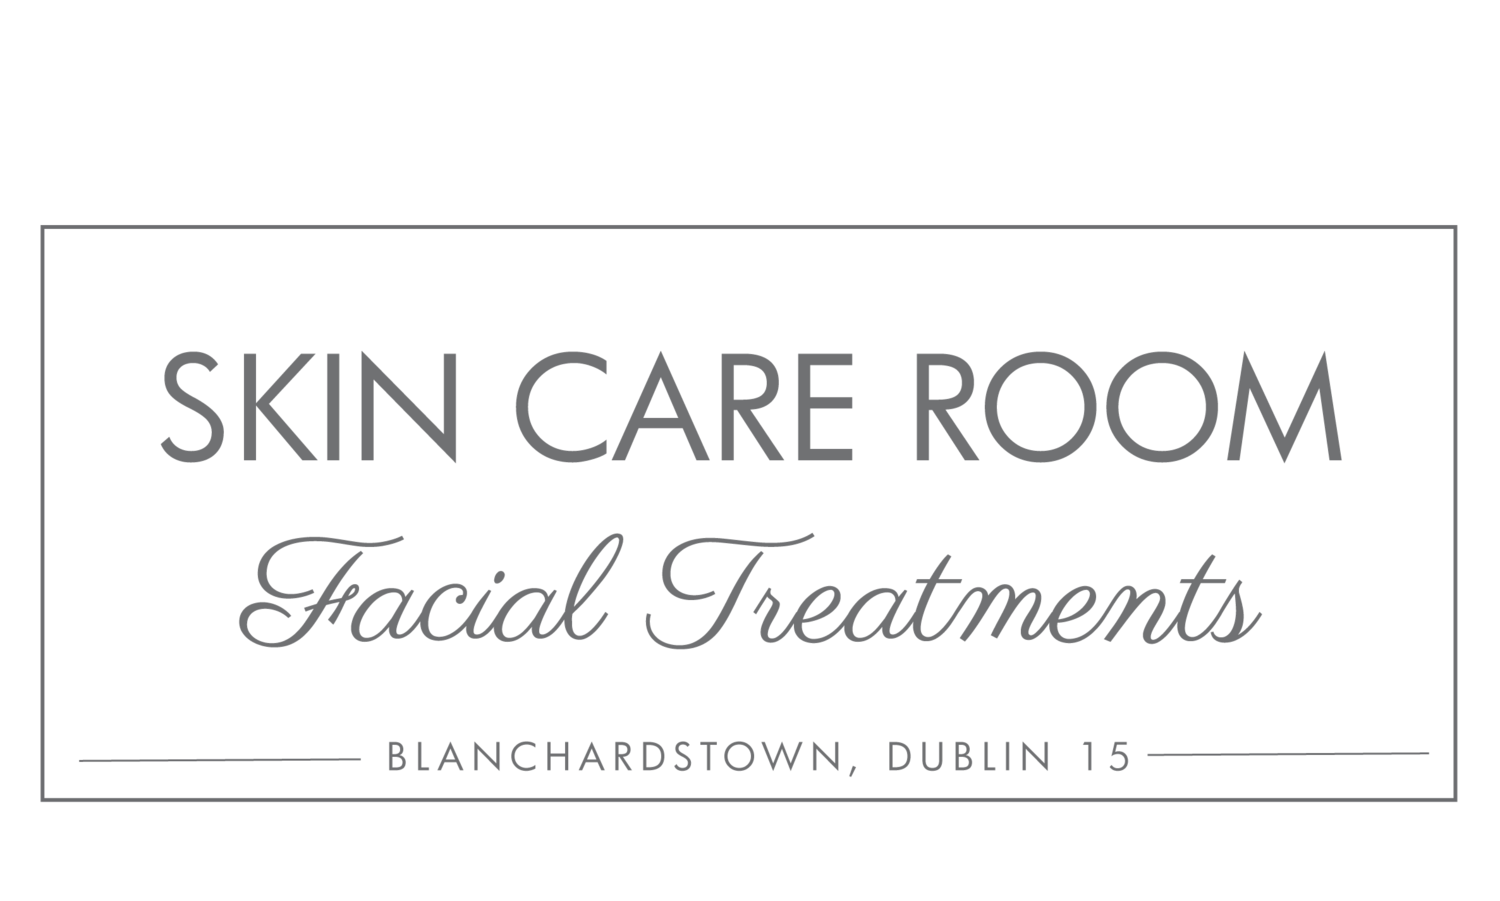 Skin Care Room - Facial Treatments